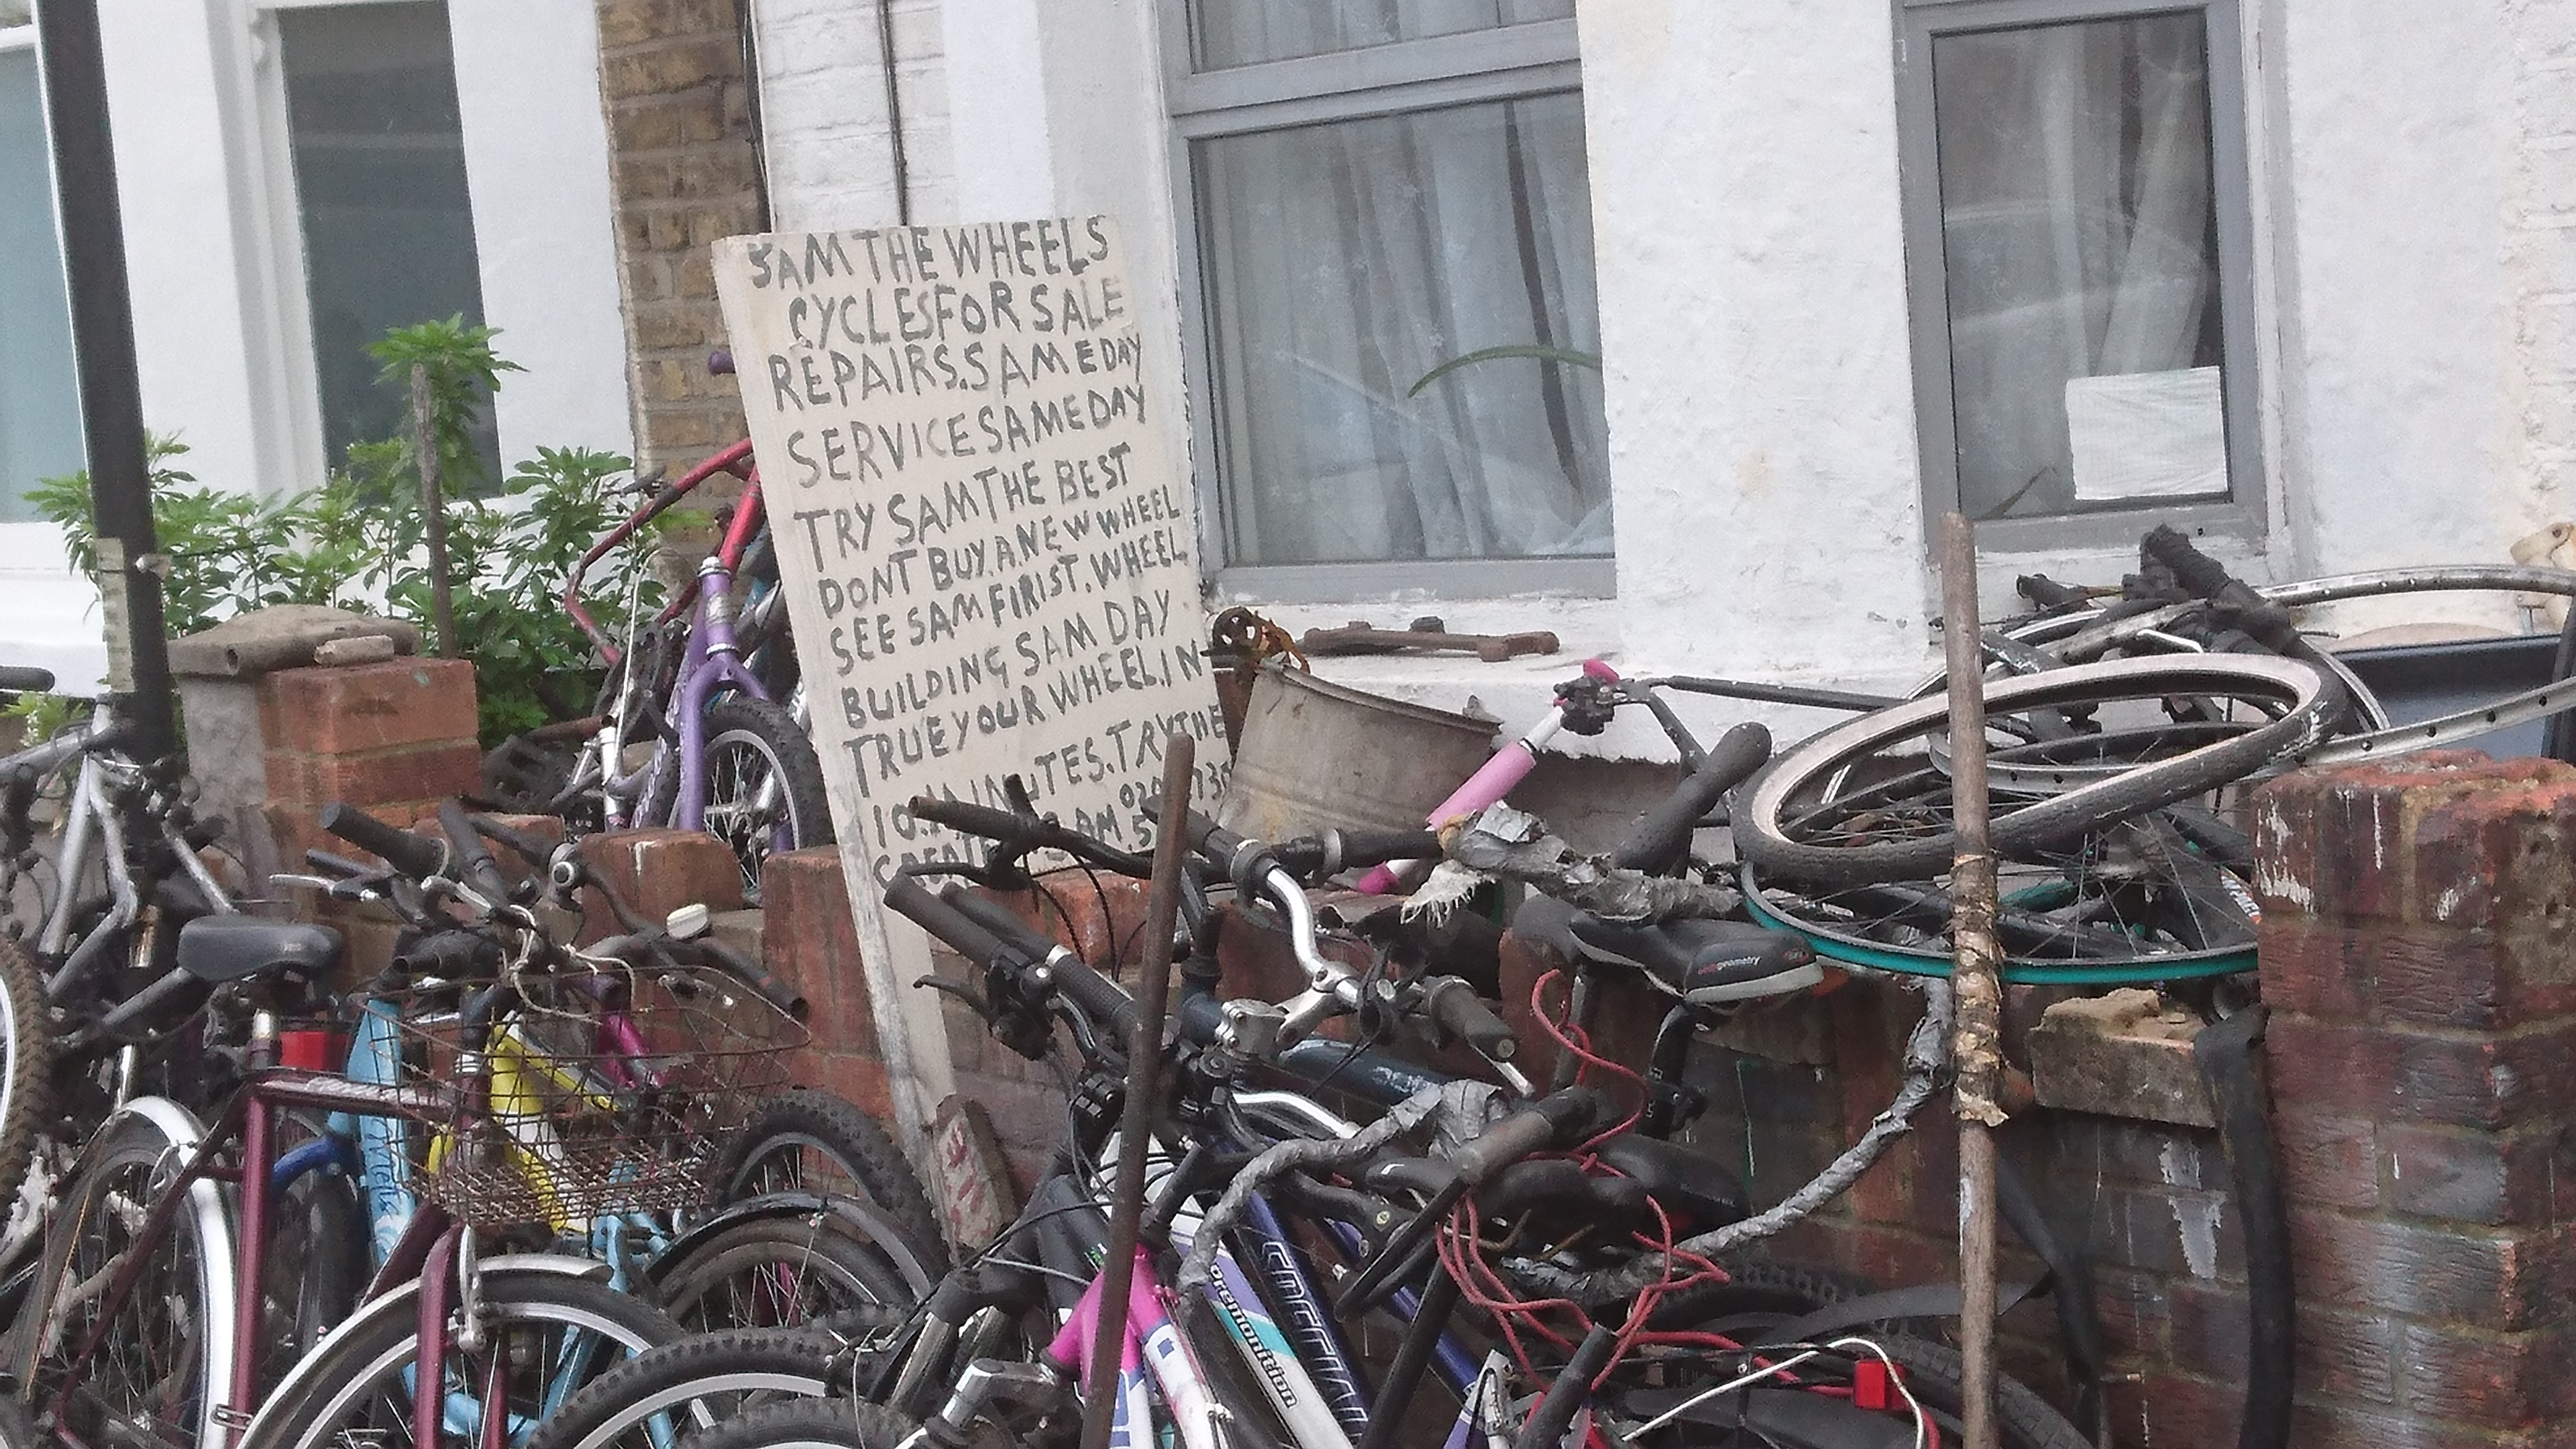 Bikes for Sale! A guide to buying second hand rides in London